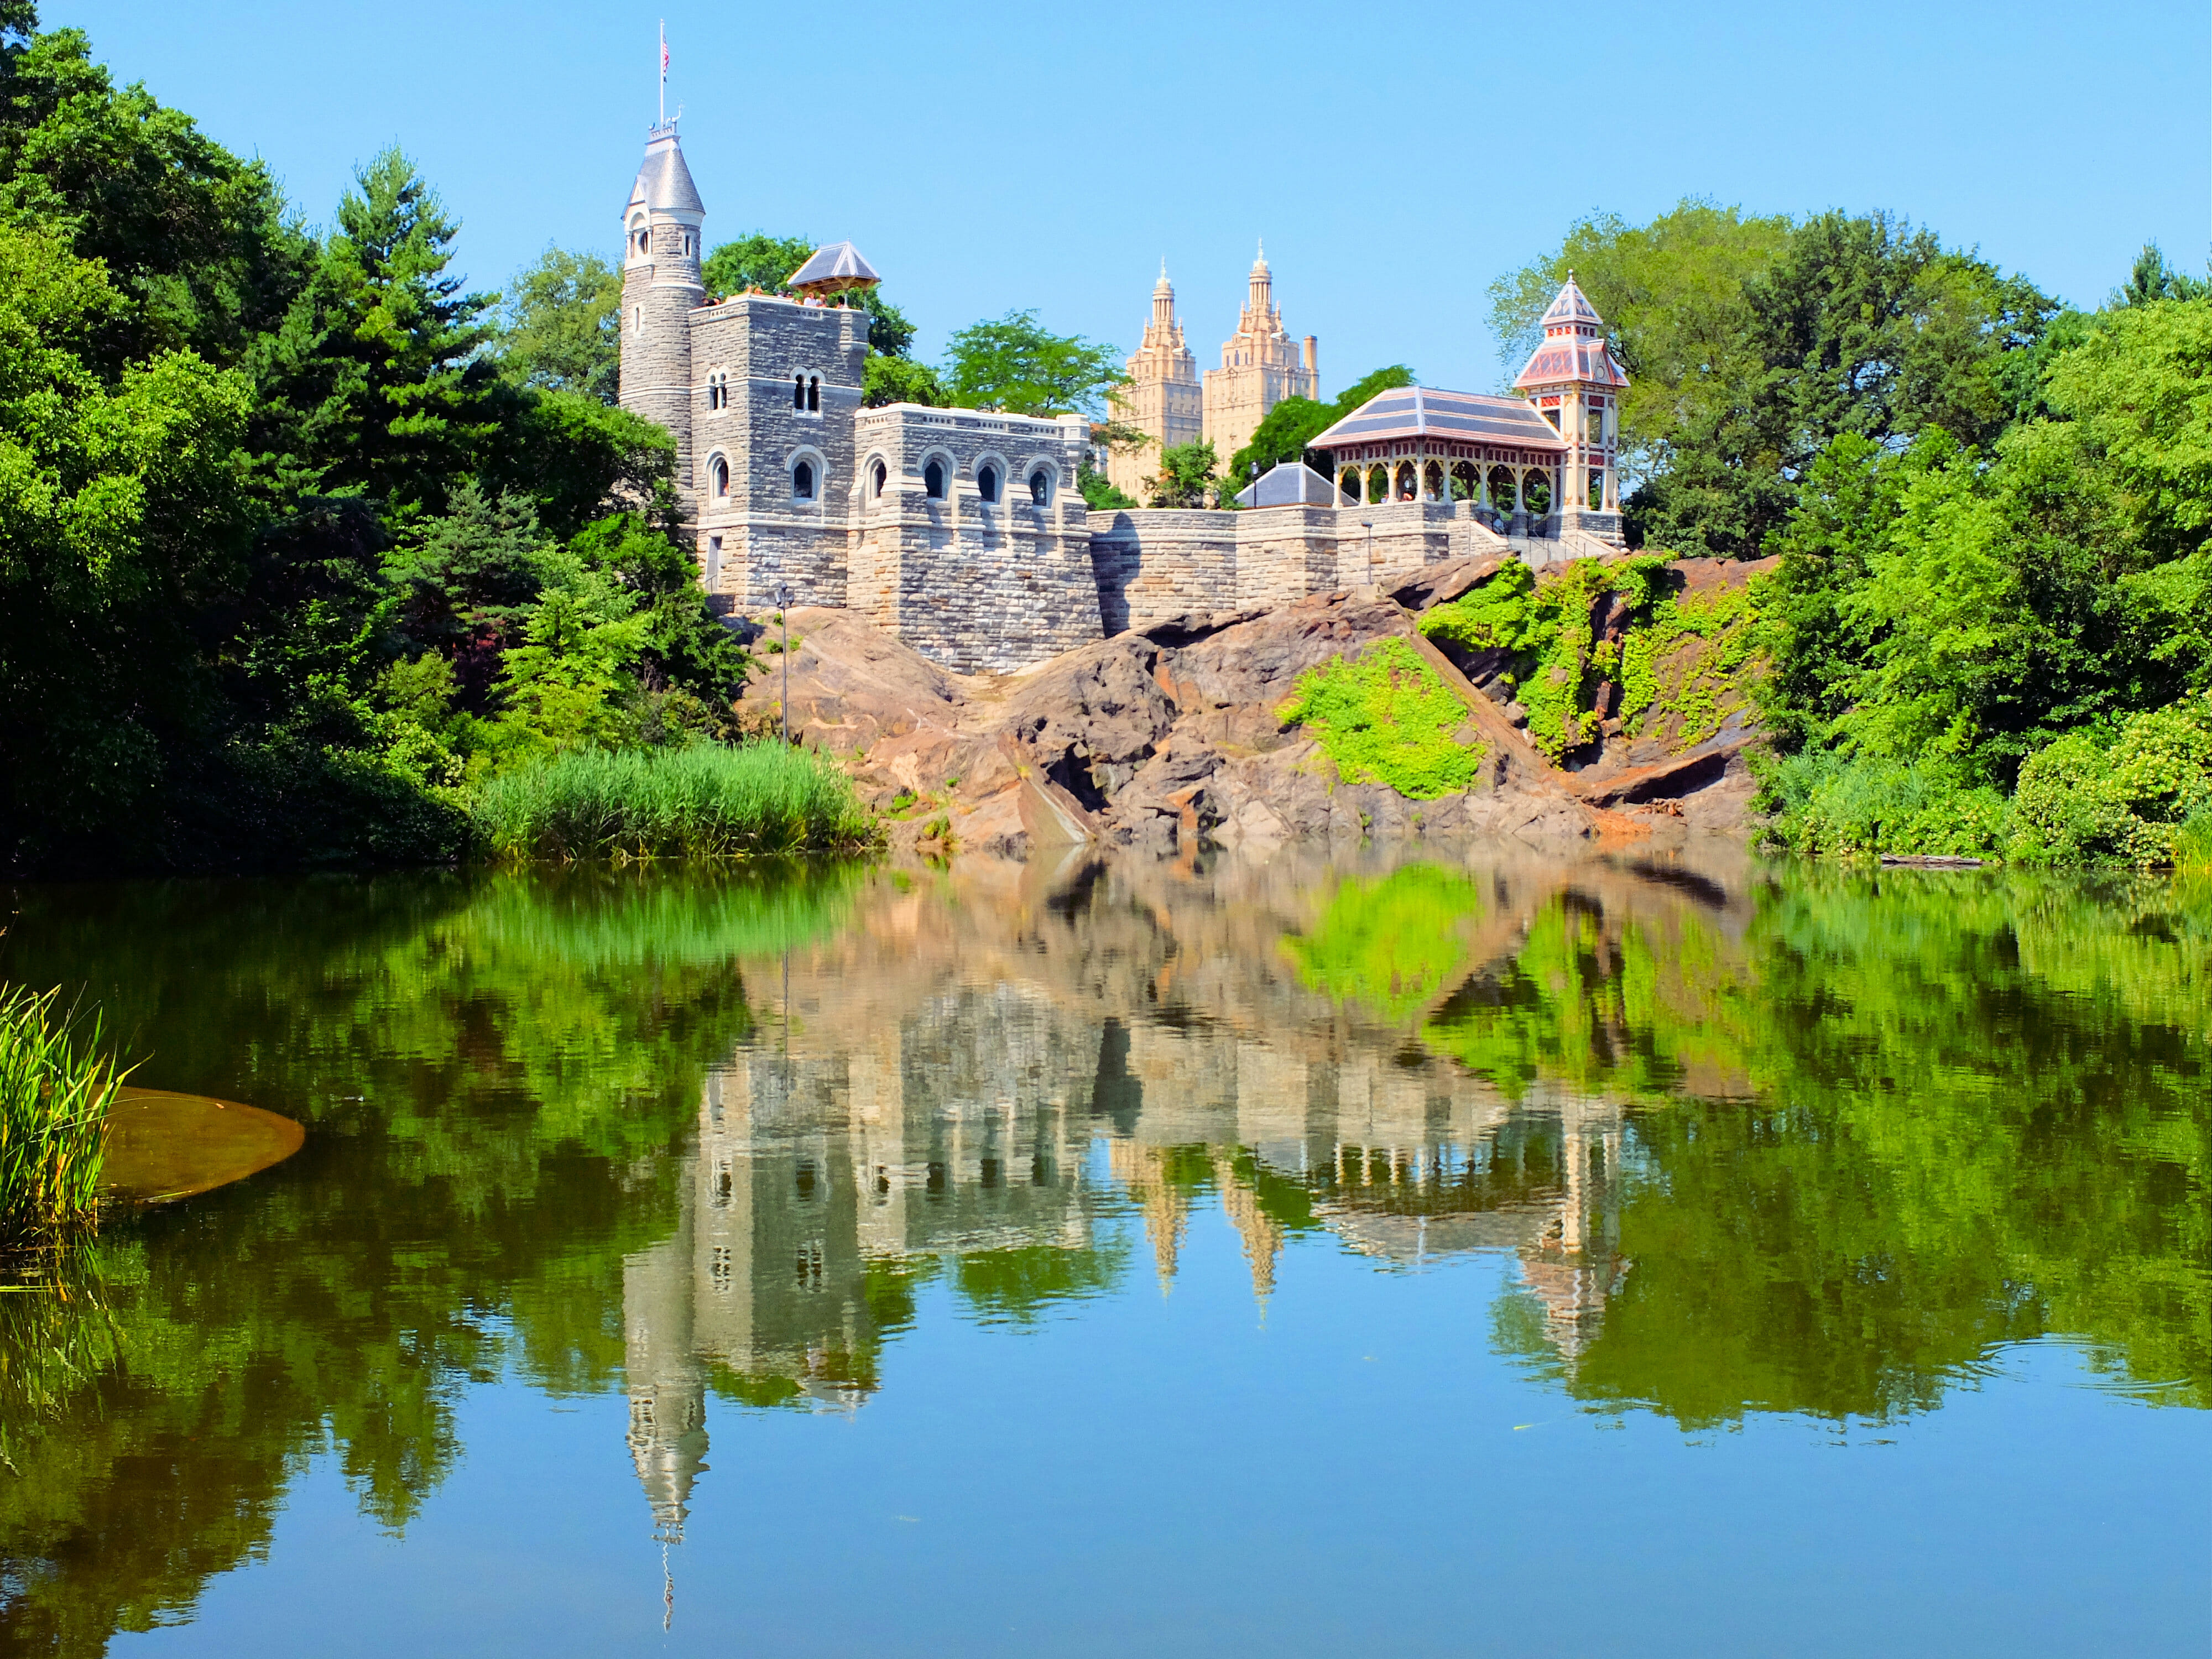 Belvedere Castle in Central Park New York High Quality Wallpaper